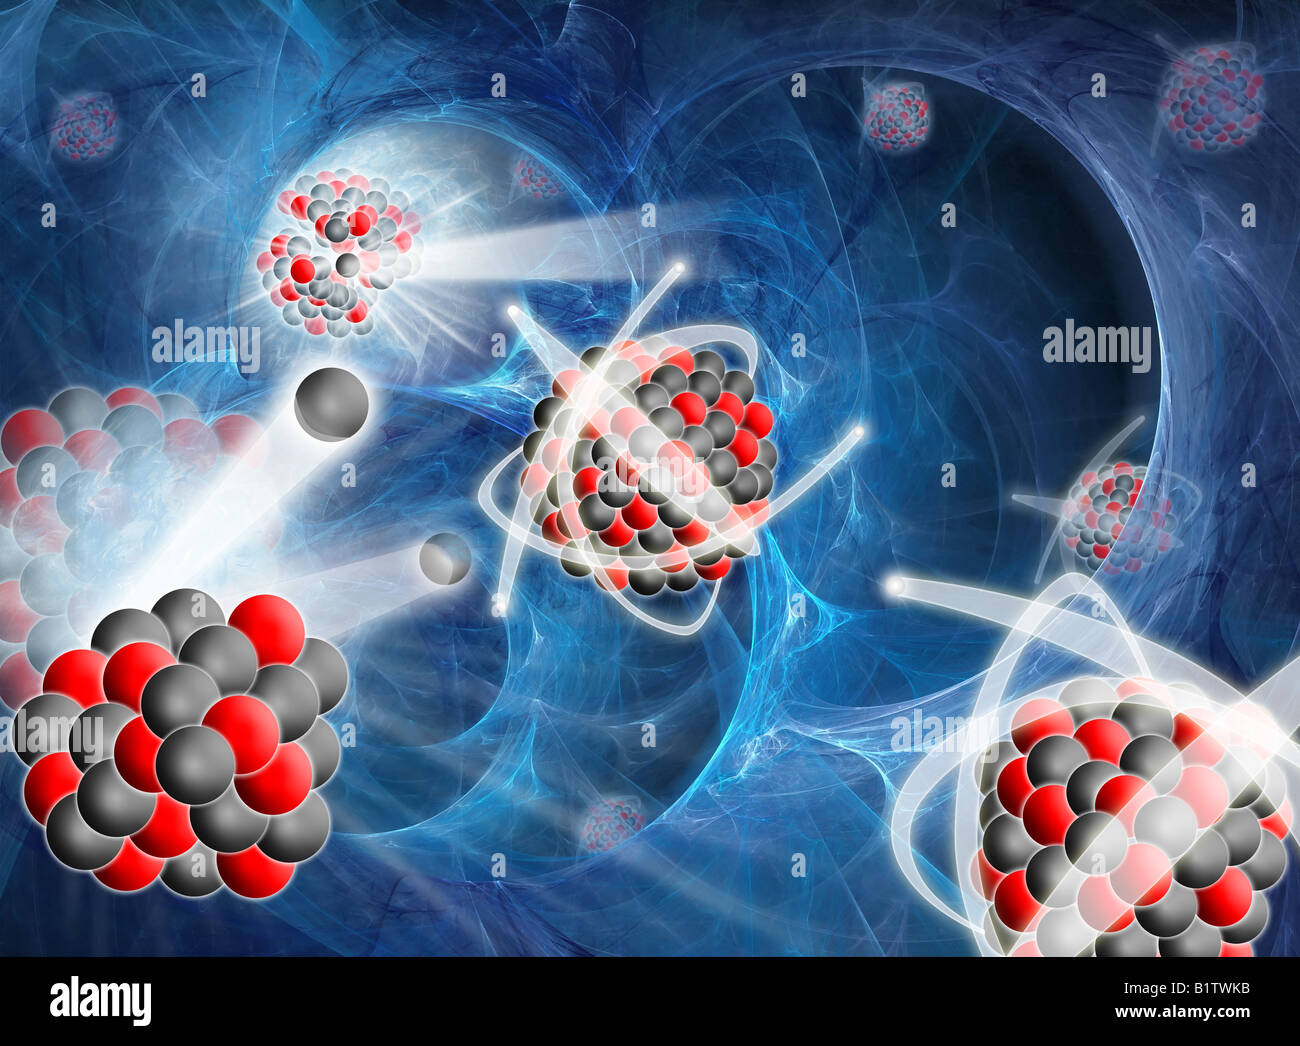 Conceptual image of nuclear fission, with atoms seen to break up from free neutrons and release vast amounts of Stock Photo